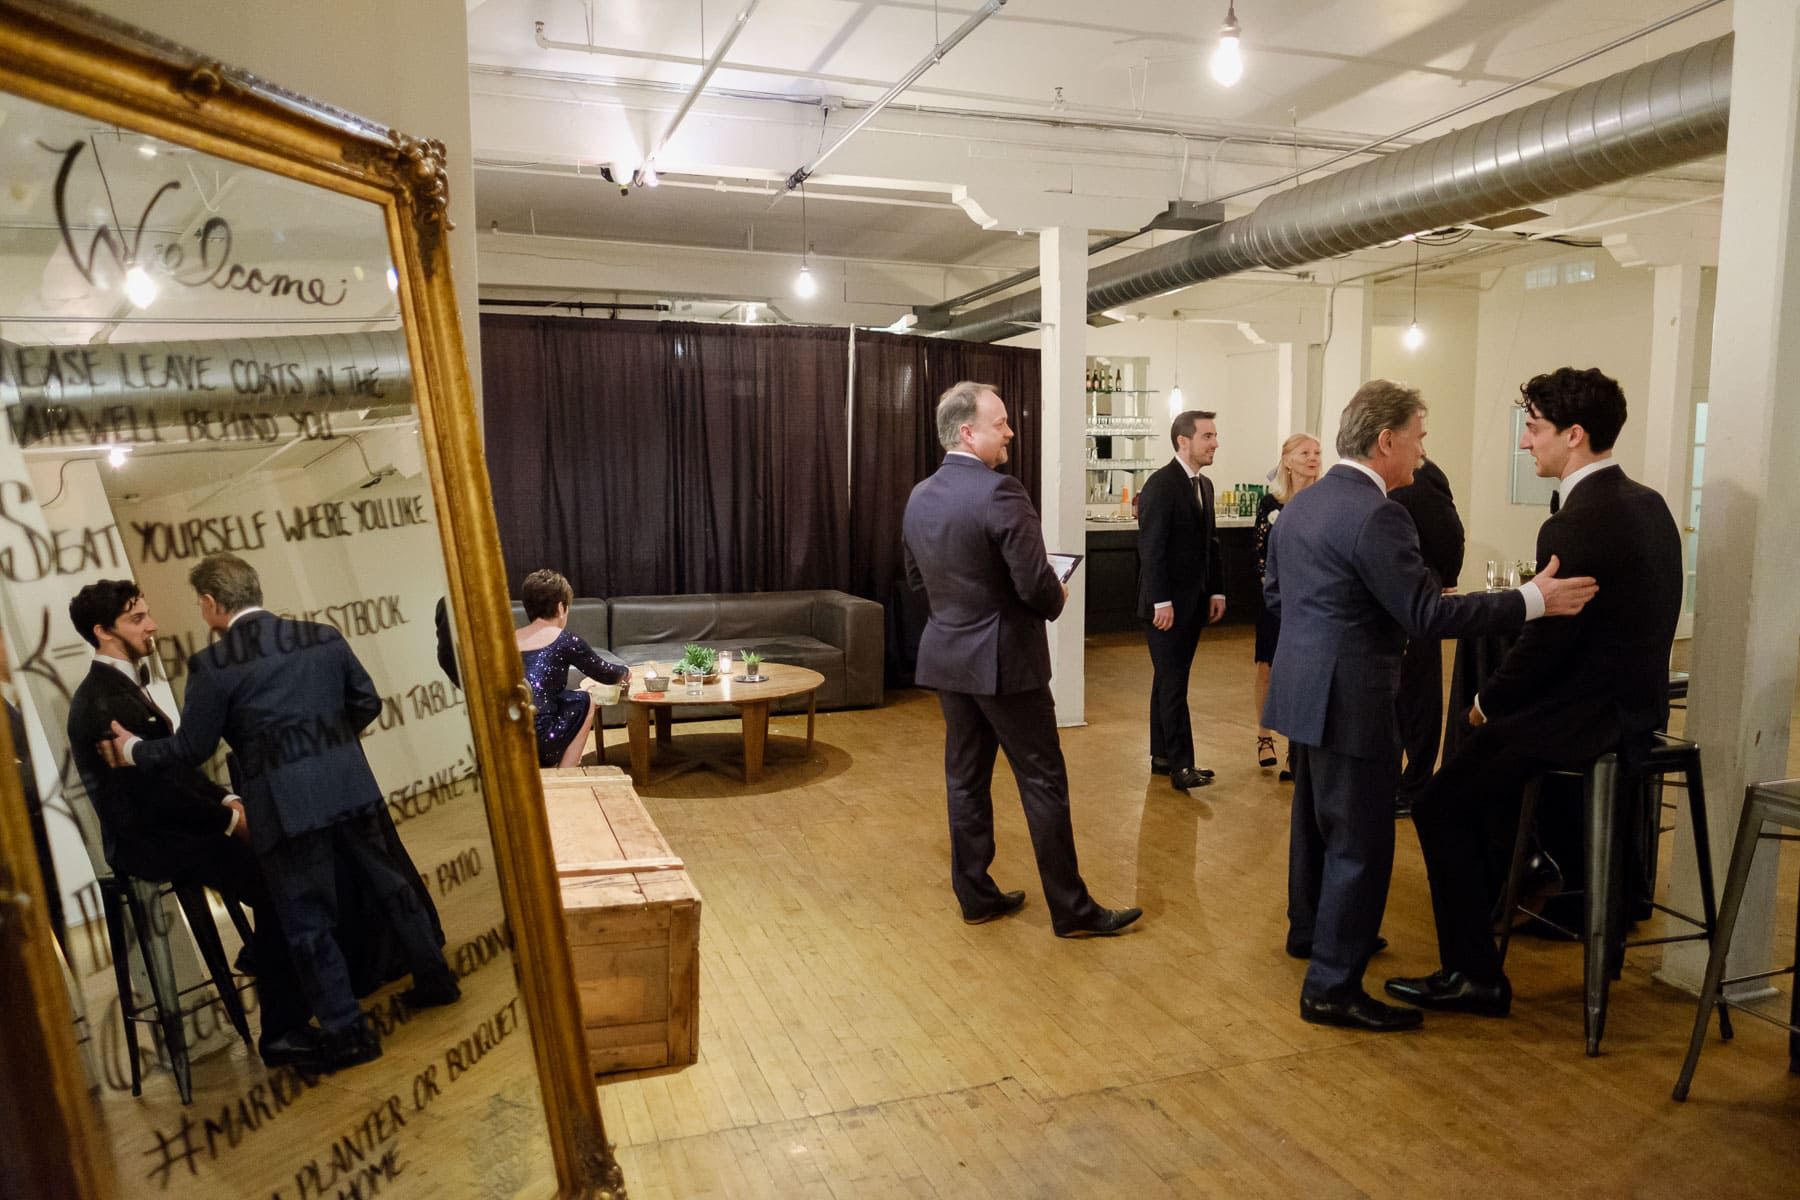 Several people, including the groom, reflected through mirror, just before ceremony at The Burroughes building wedding.